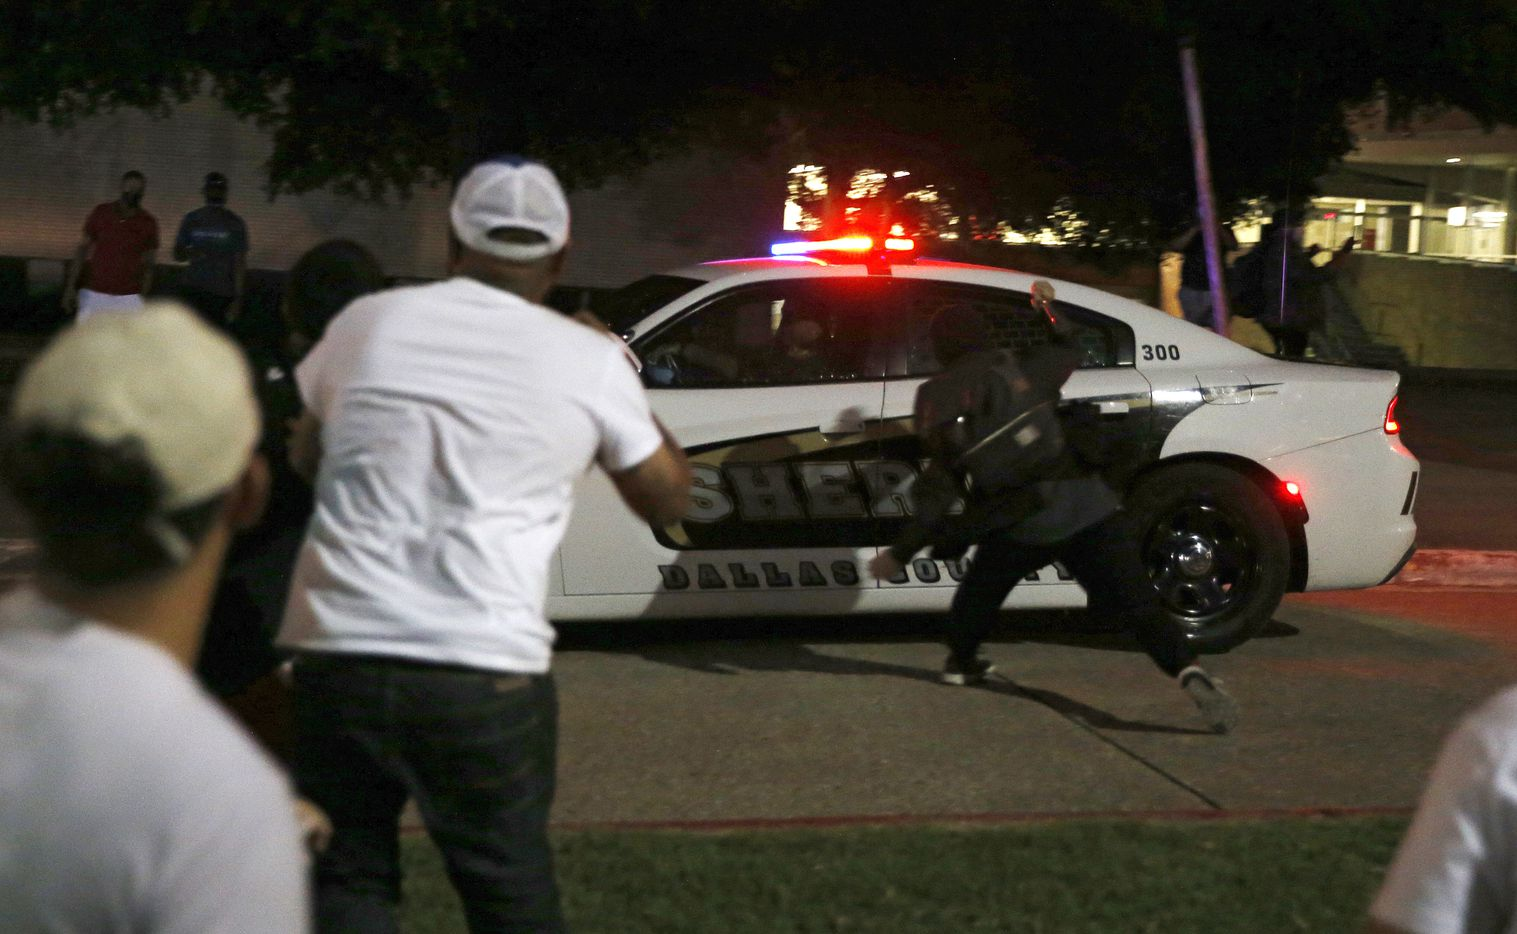 Protesters hit a Dallas County Sheriff's vehicle during a demonstration against police brutality in downtown Dallas, on Friday, May 29, 2020. George Floyd died in police custody in Minneapolis on May 25.